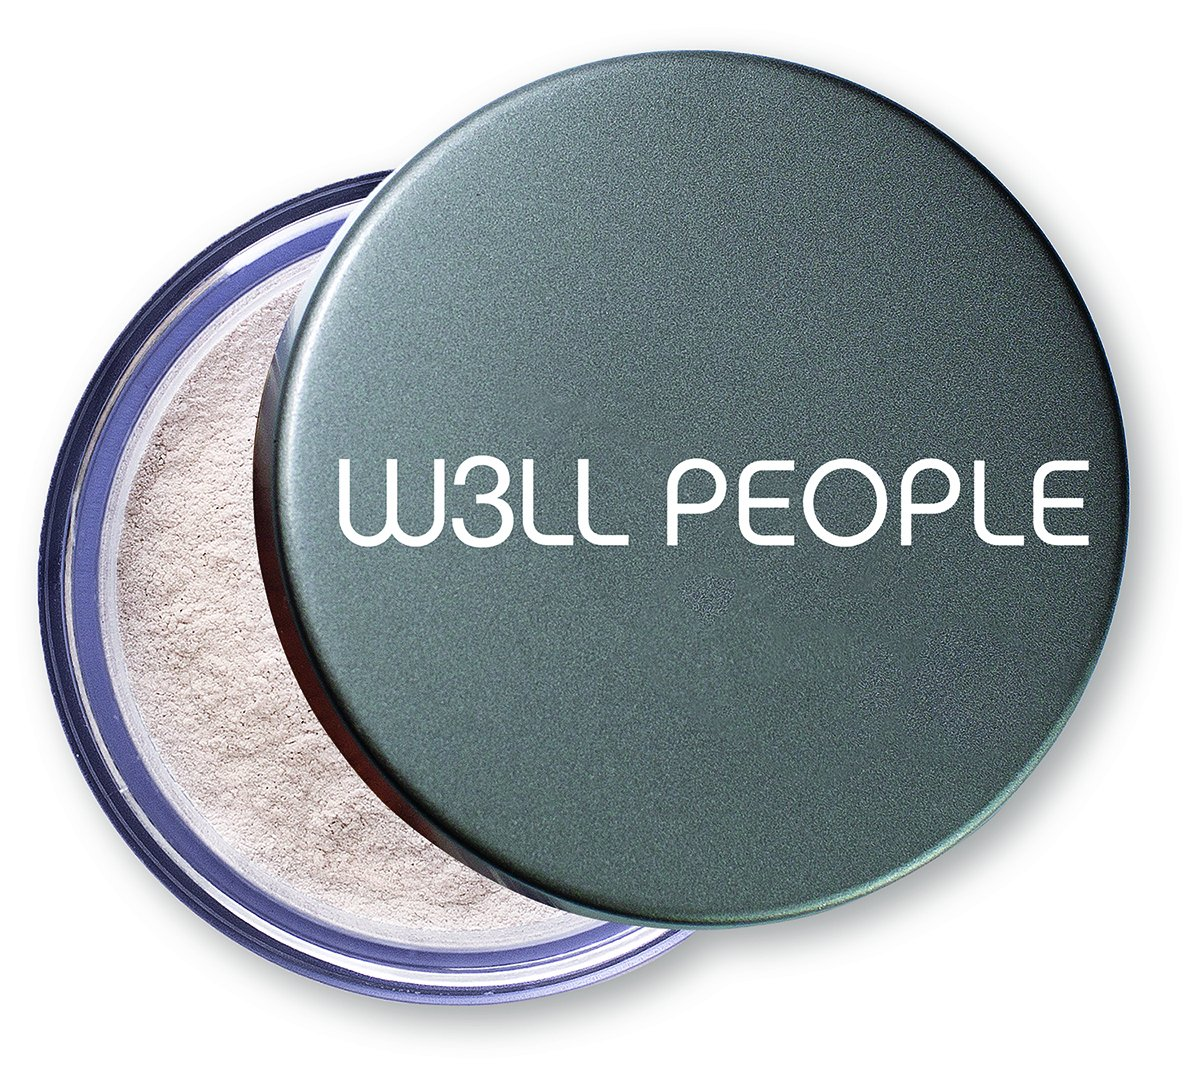 W3LL PEOPLE - Natural Bio Brightener Invisible Powder